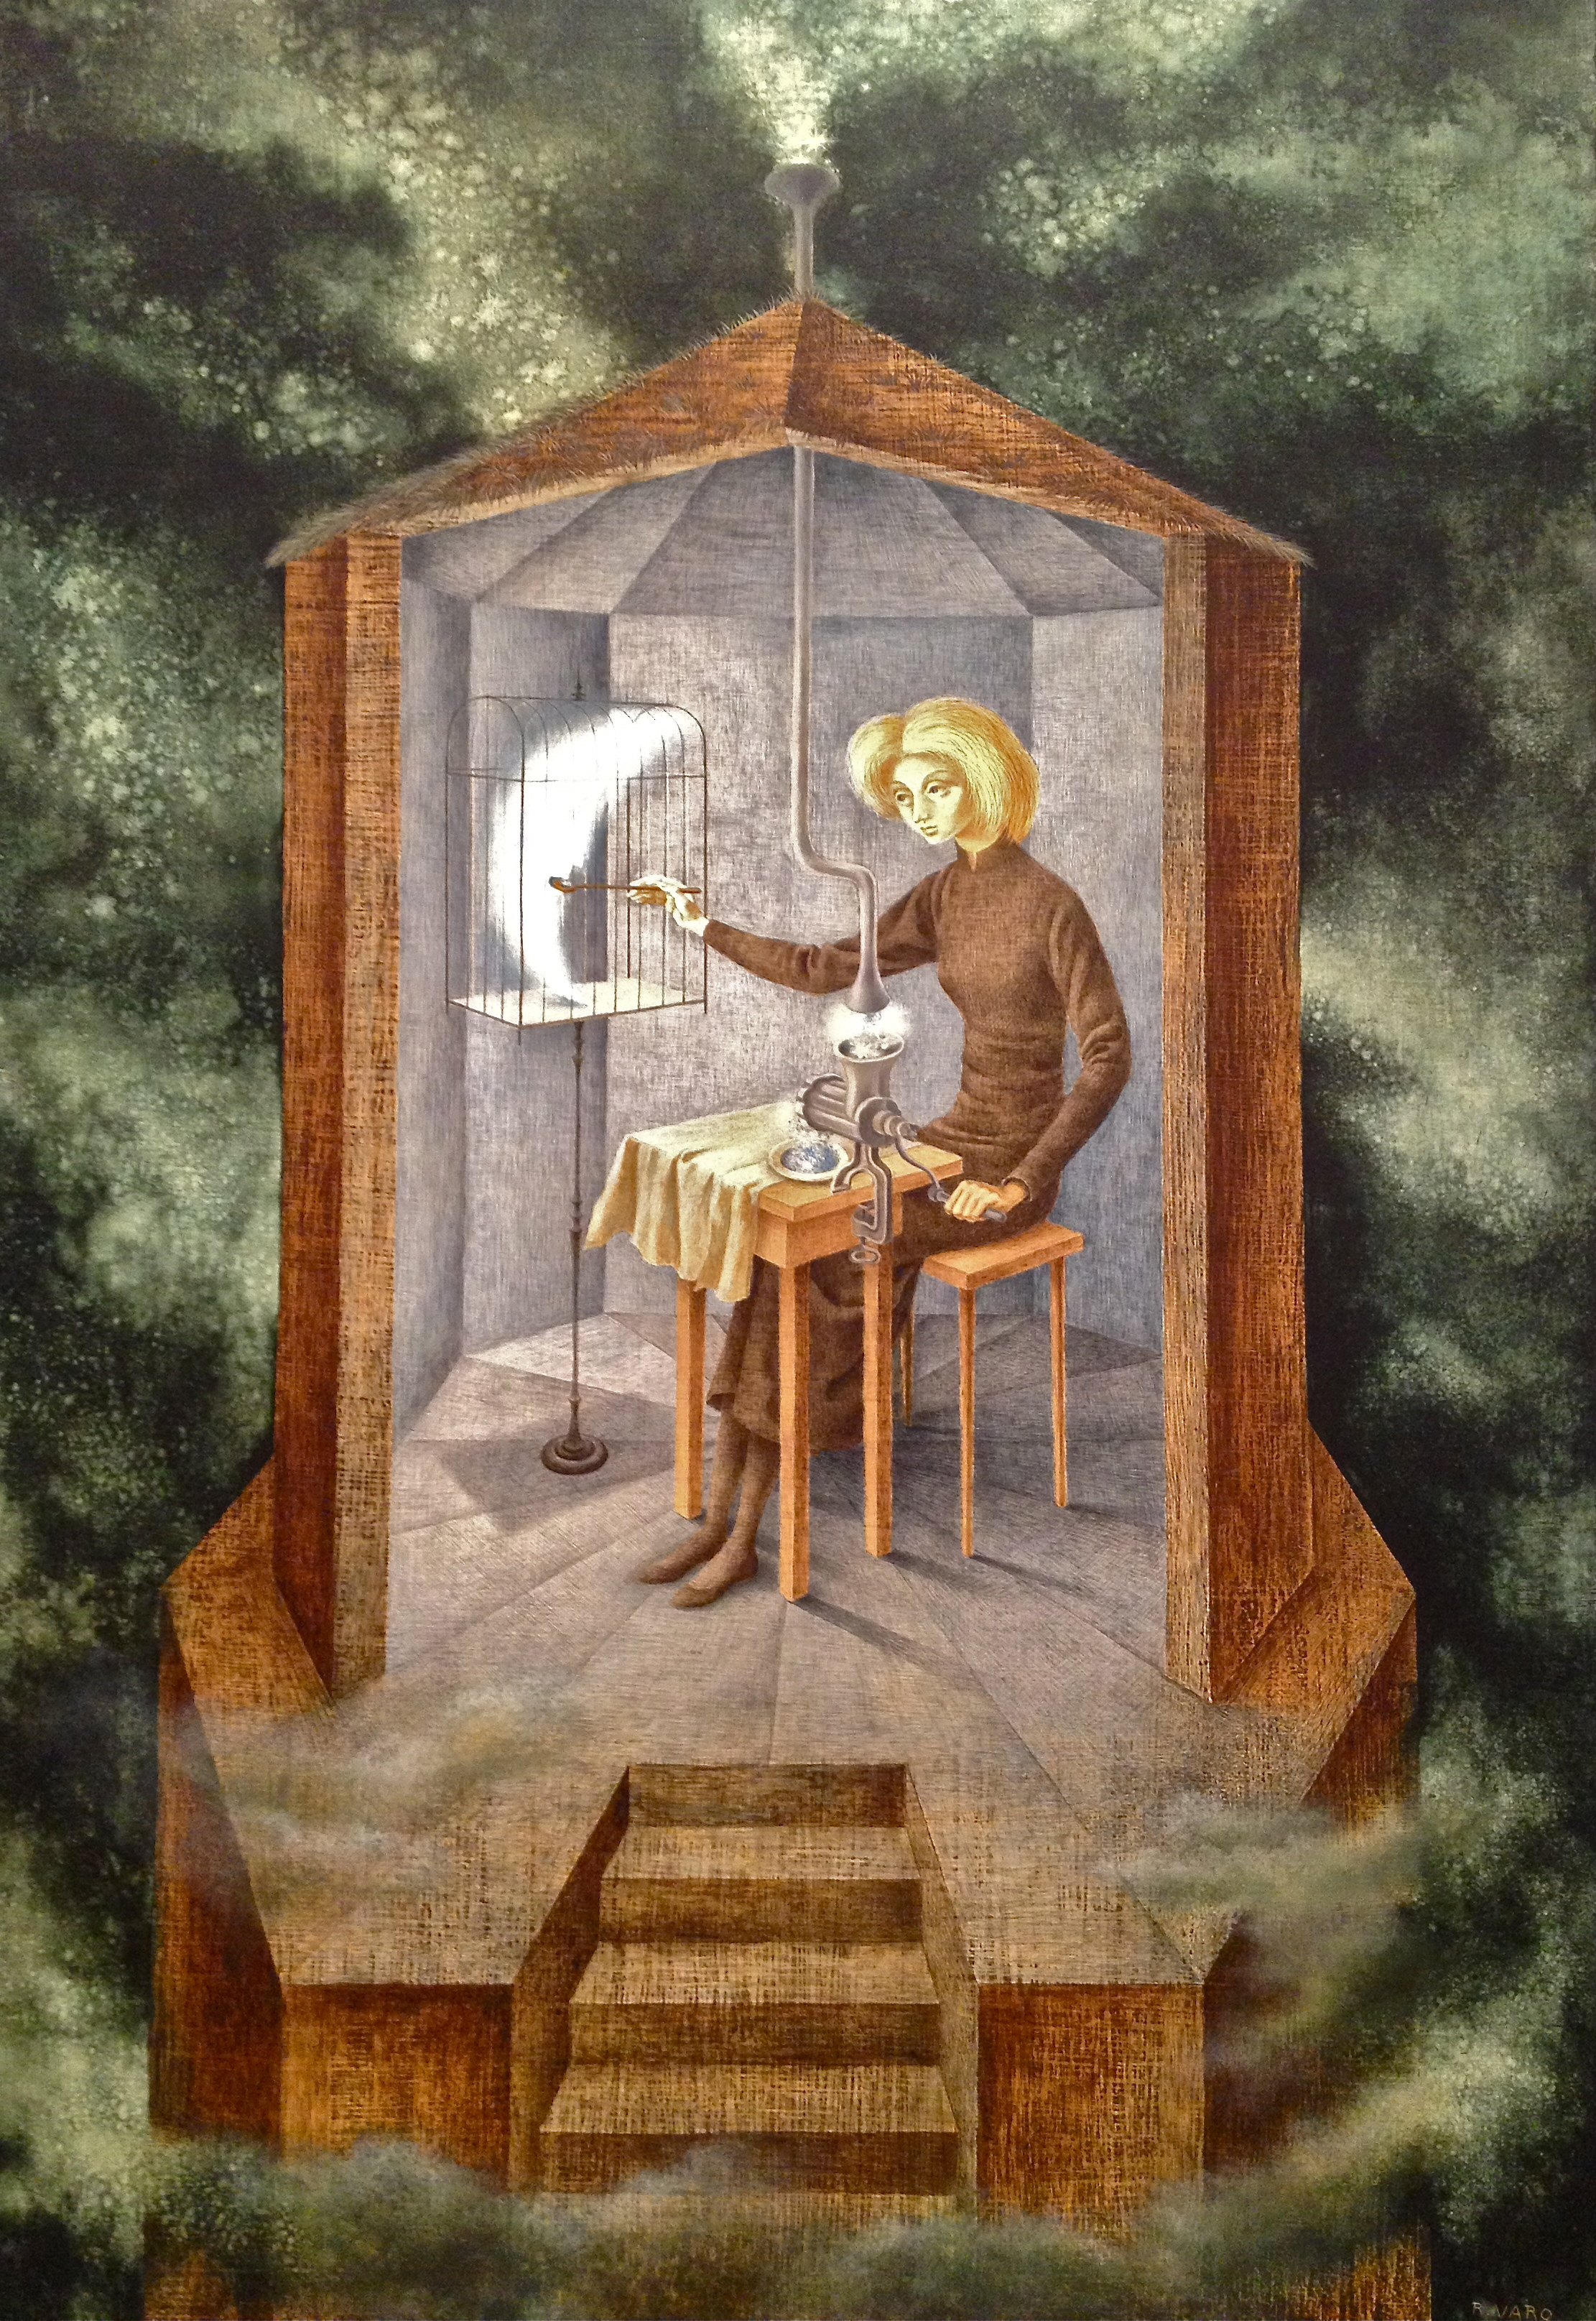 Star Maker, 1958 — Remedios Varo